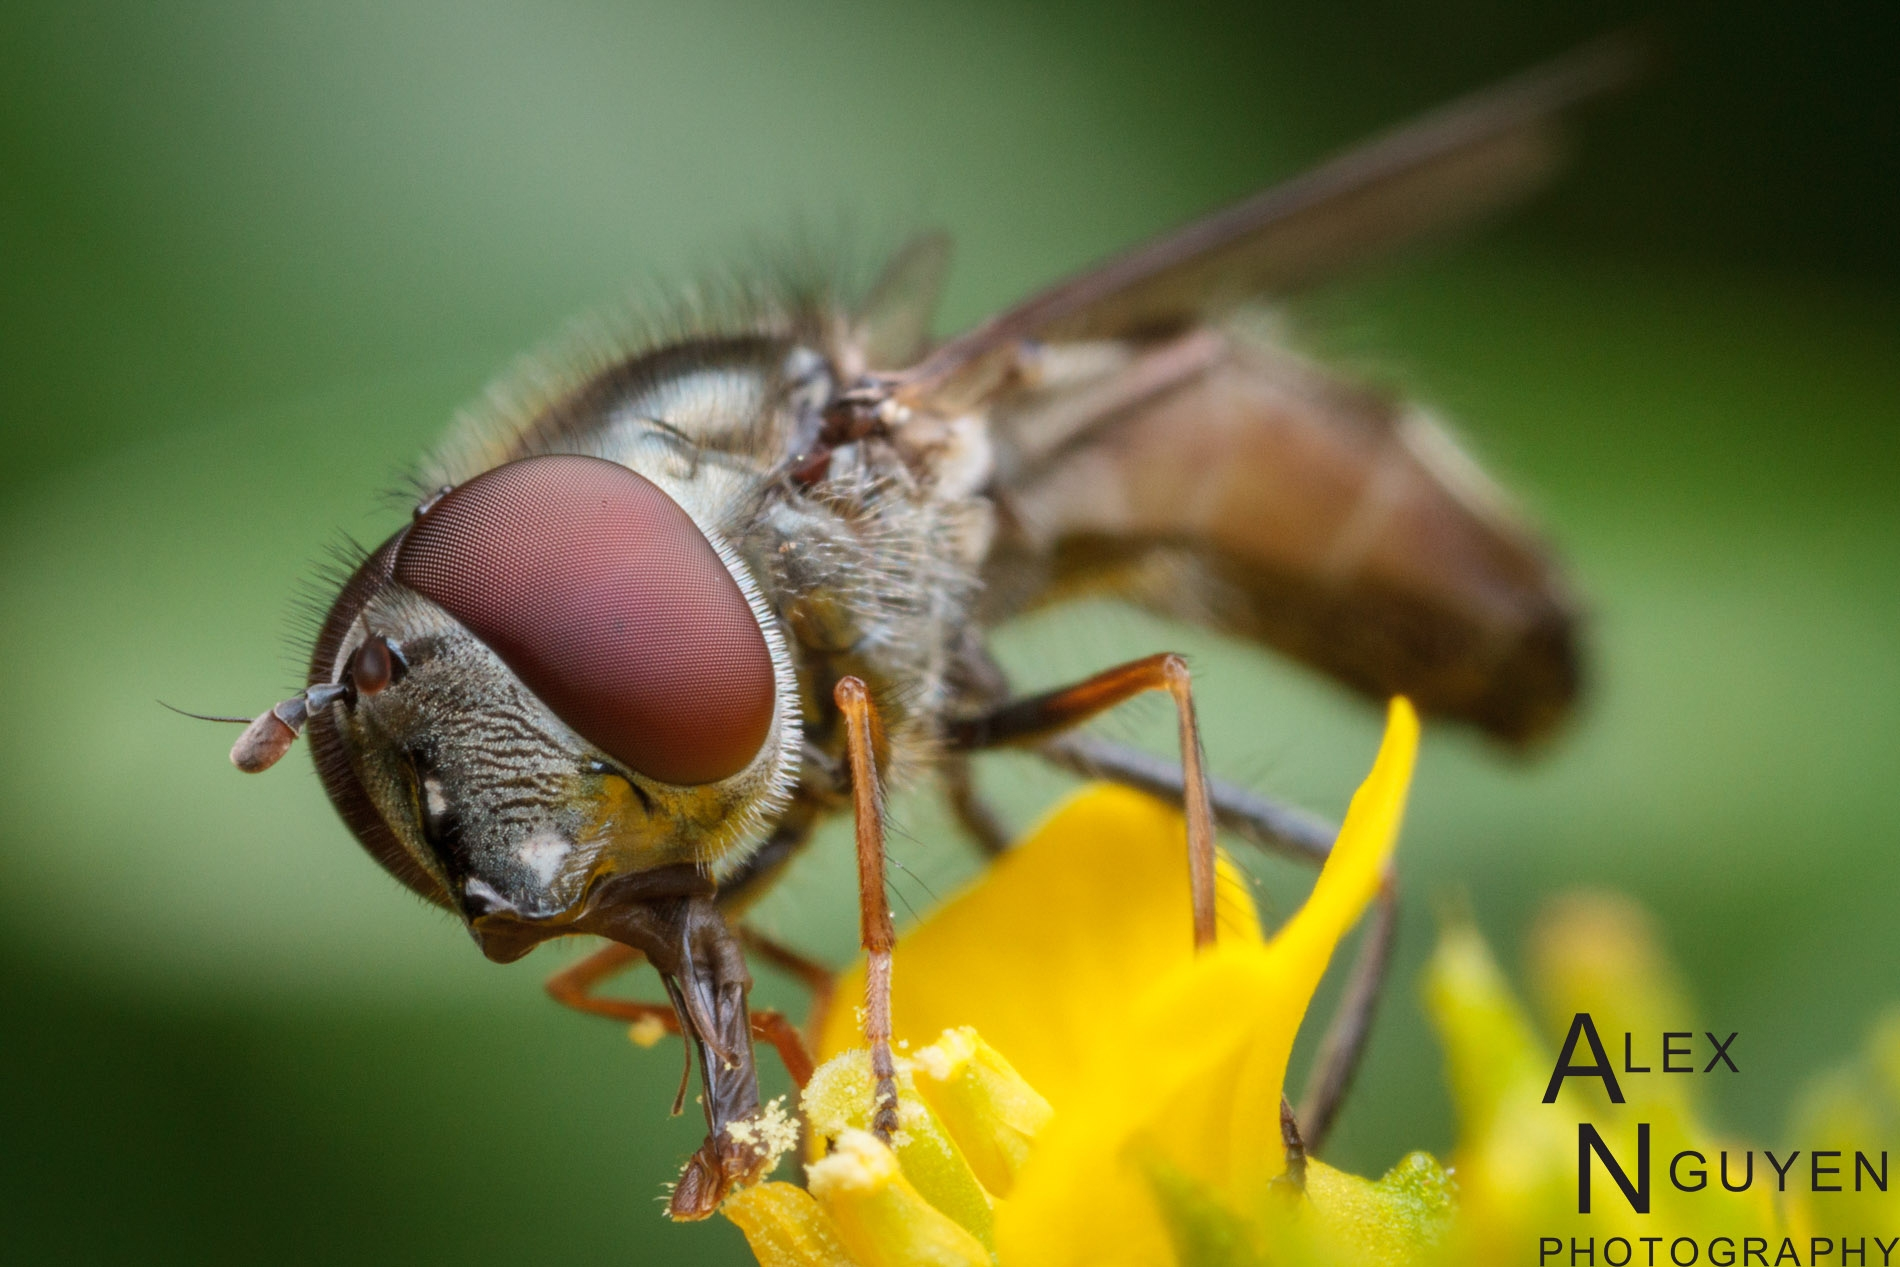 UC Davis Entomology Grad Alex Nguyen: Hover Fly Photo in